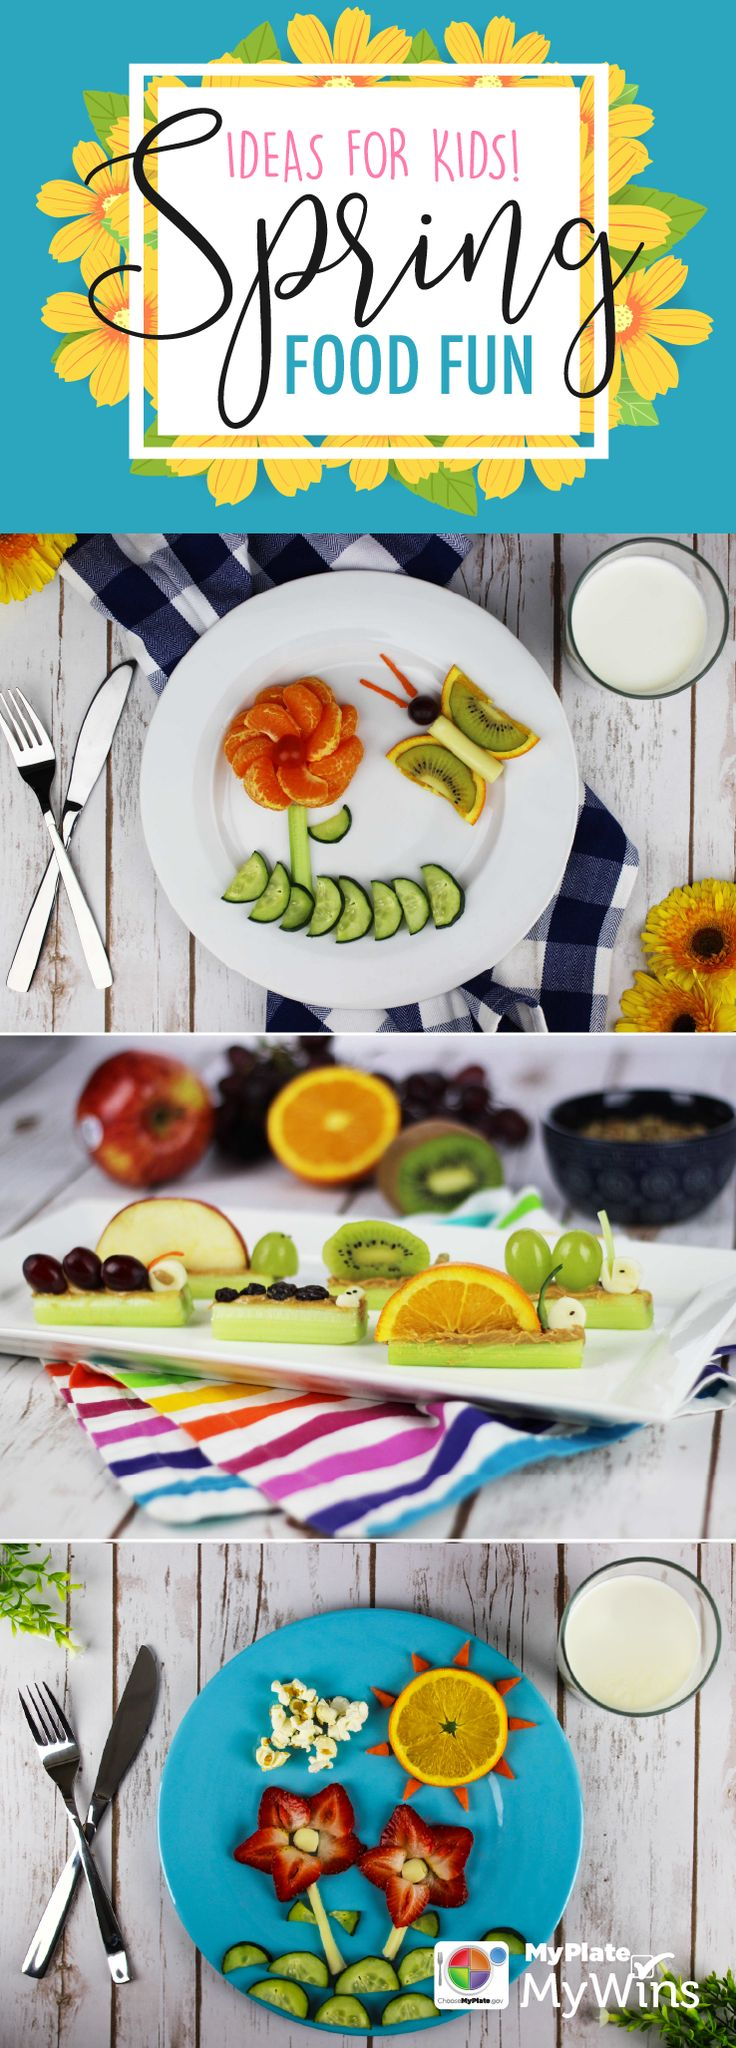 Let kids have fun with their food & make these snacks together!  #Spring #FoodArt #MyPlate